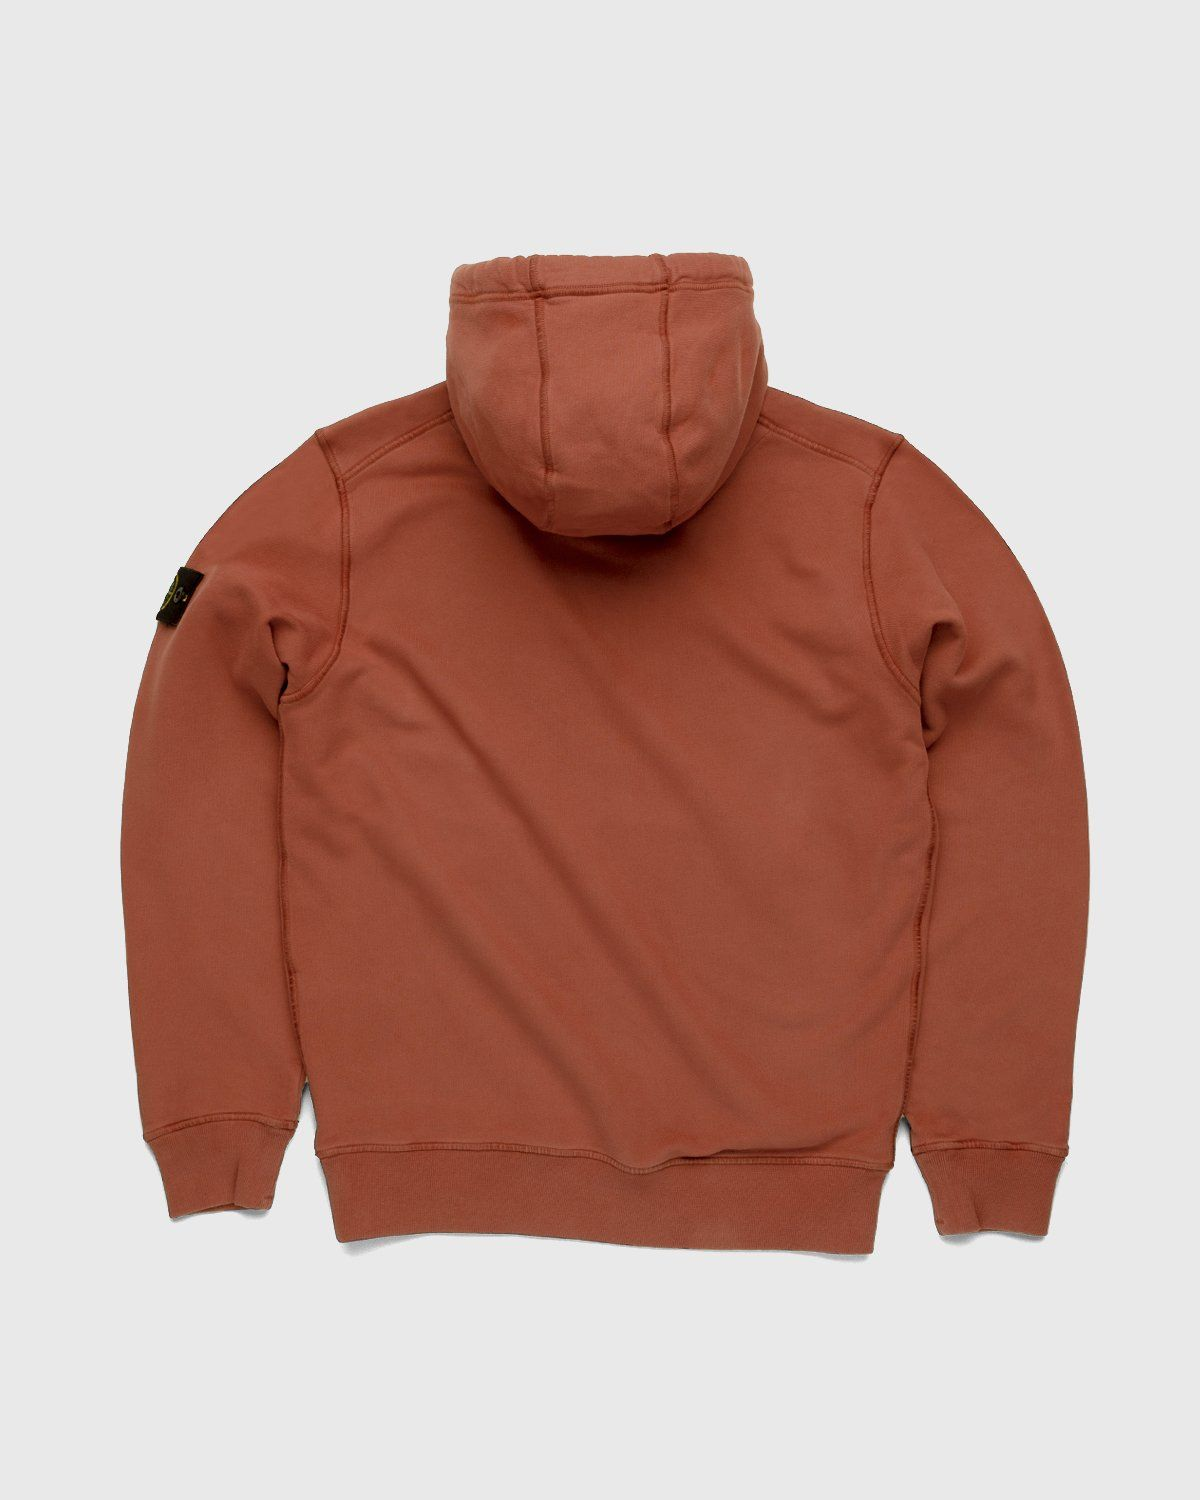 Stone Island – Dust Color Treatment Hoodie Brick Red - Image 2